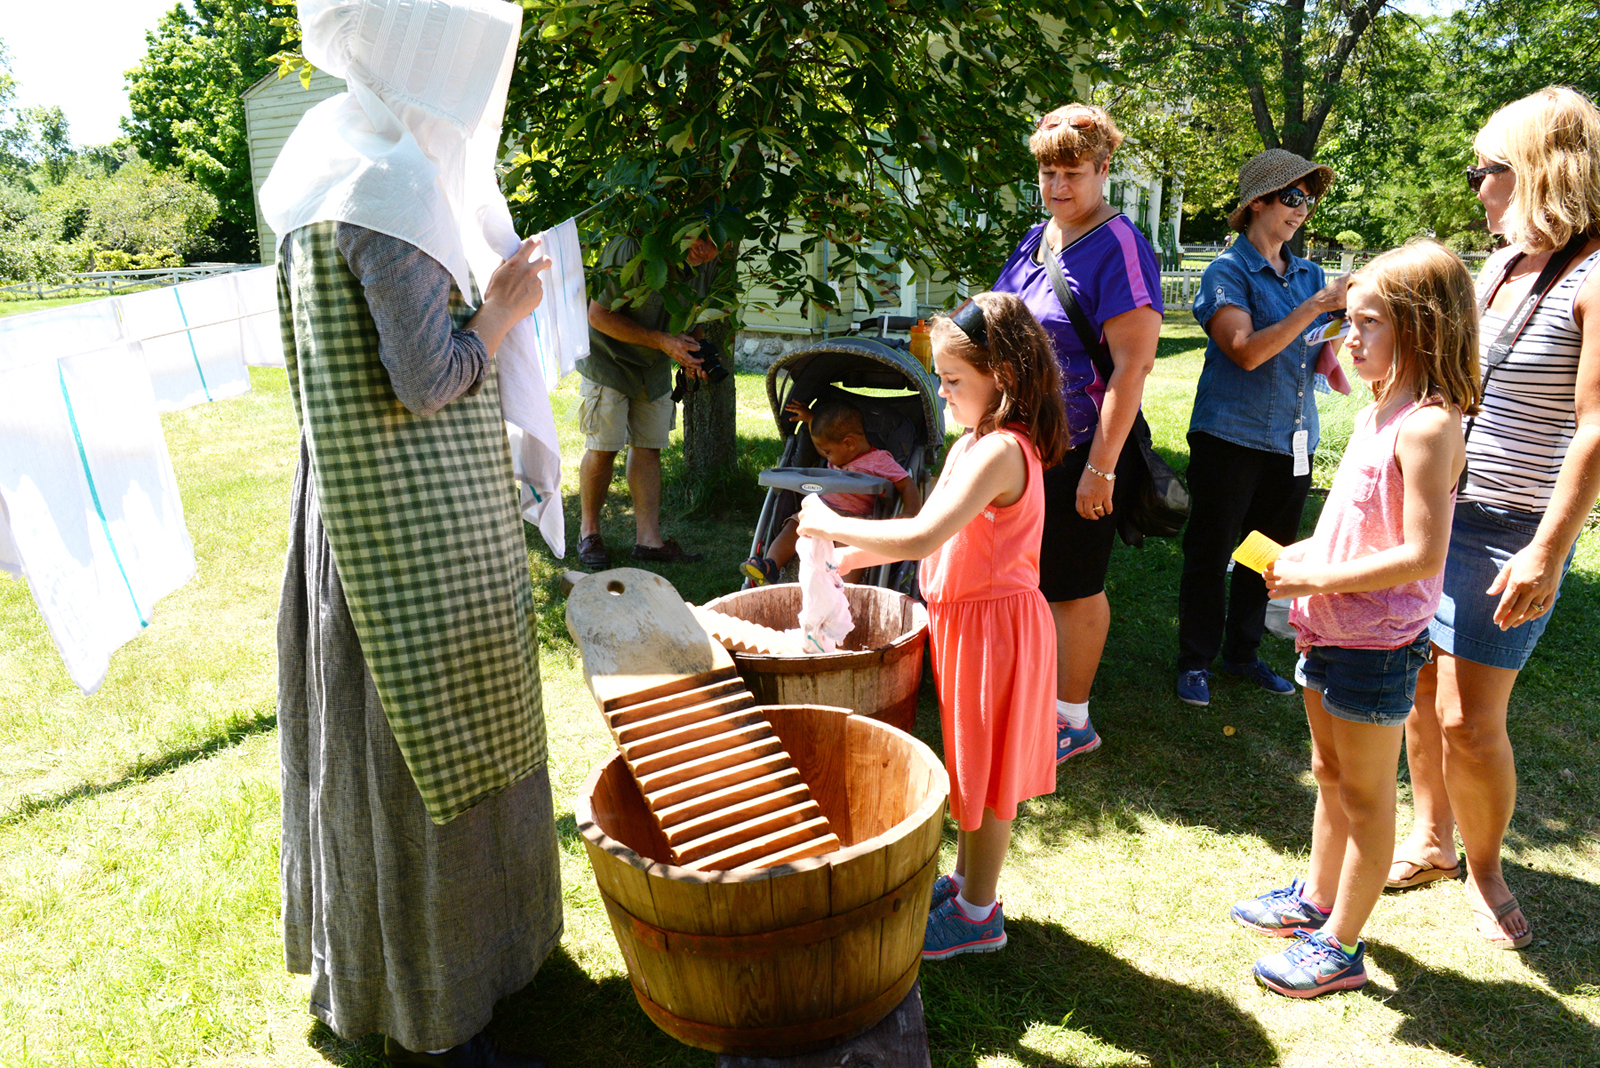 Young fans of Laura Ingalls Wilder experiment with wooden washboards at Genesee Country Village & Museum's Laura Ingalls Wilder Days. Provided photo